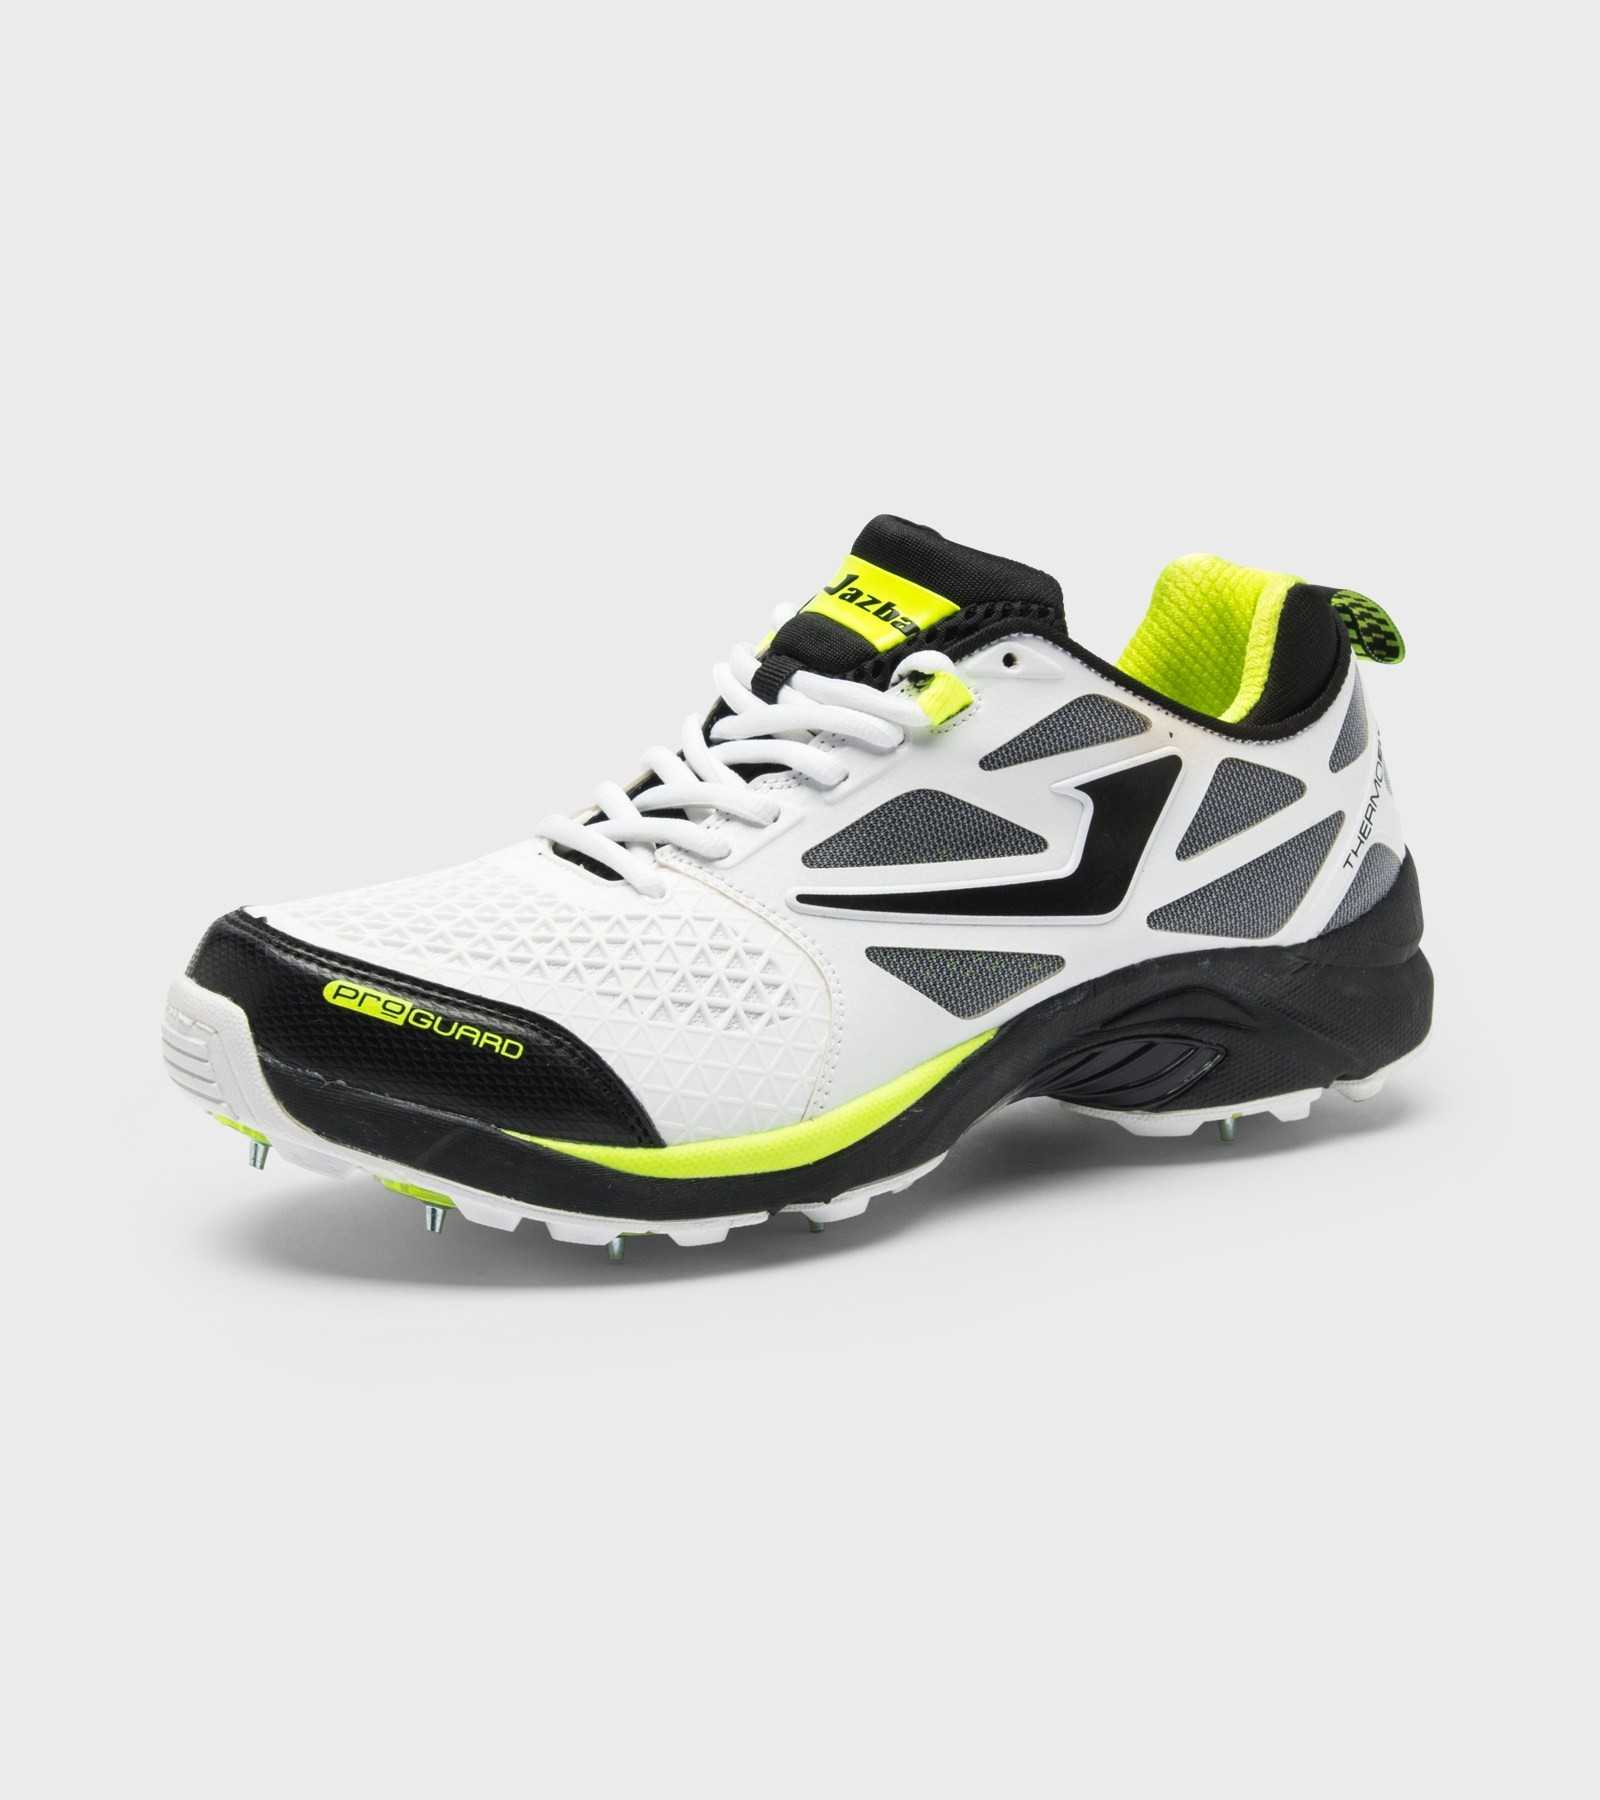 2019 Jazba Sky Drive 117 Cricket Shoes - Black/Lime